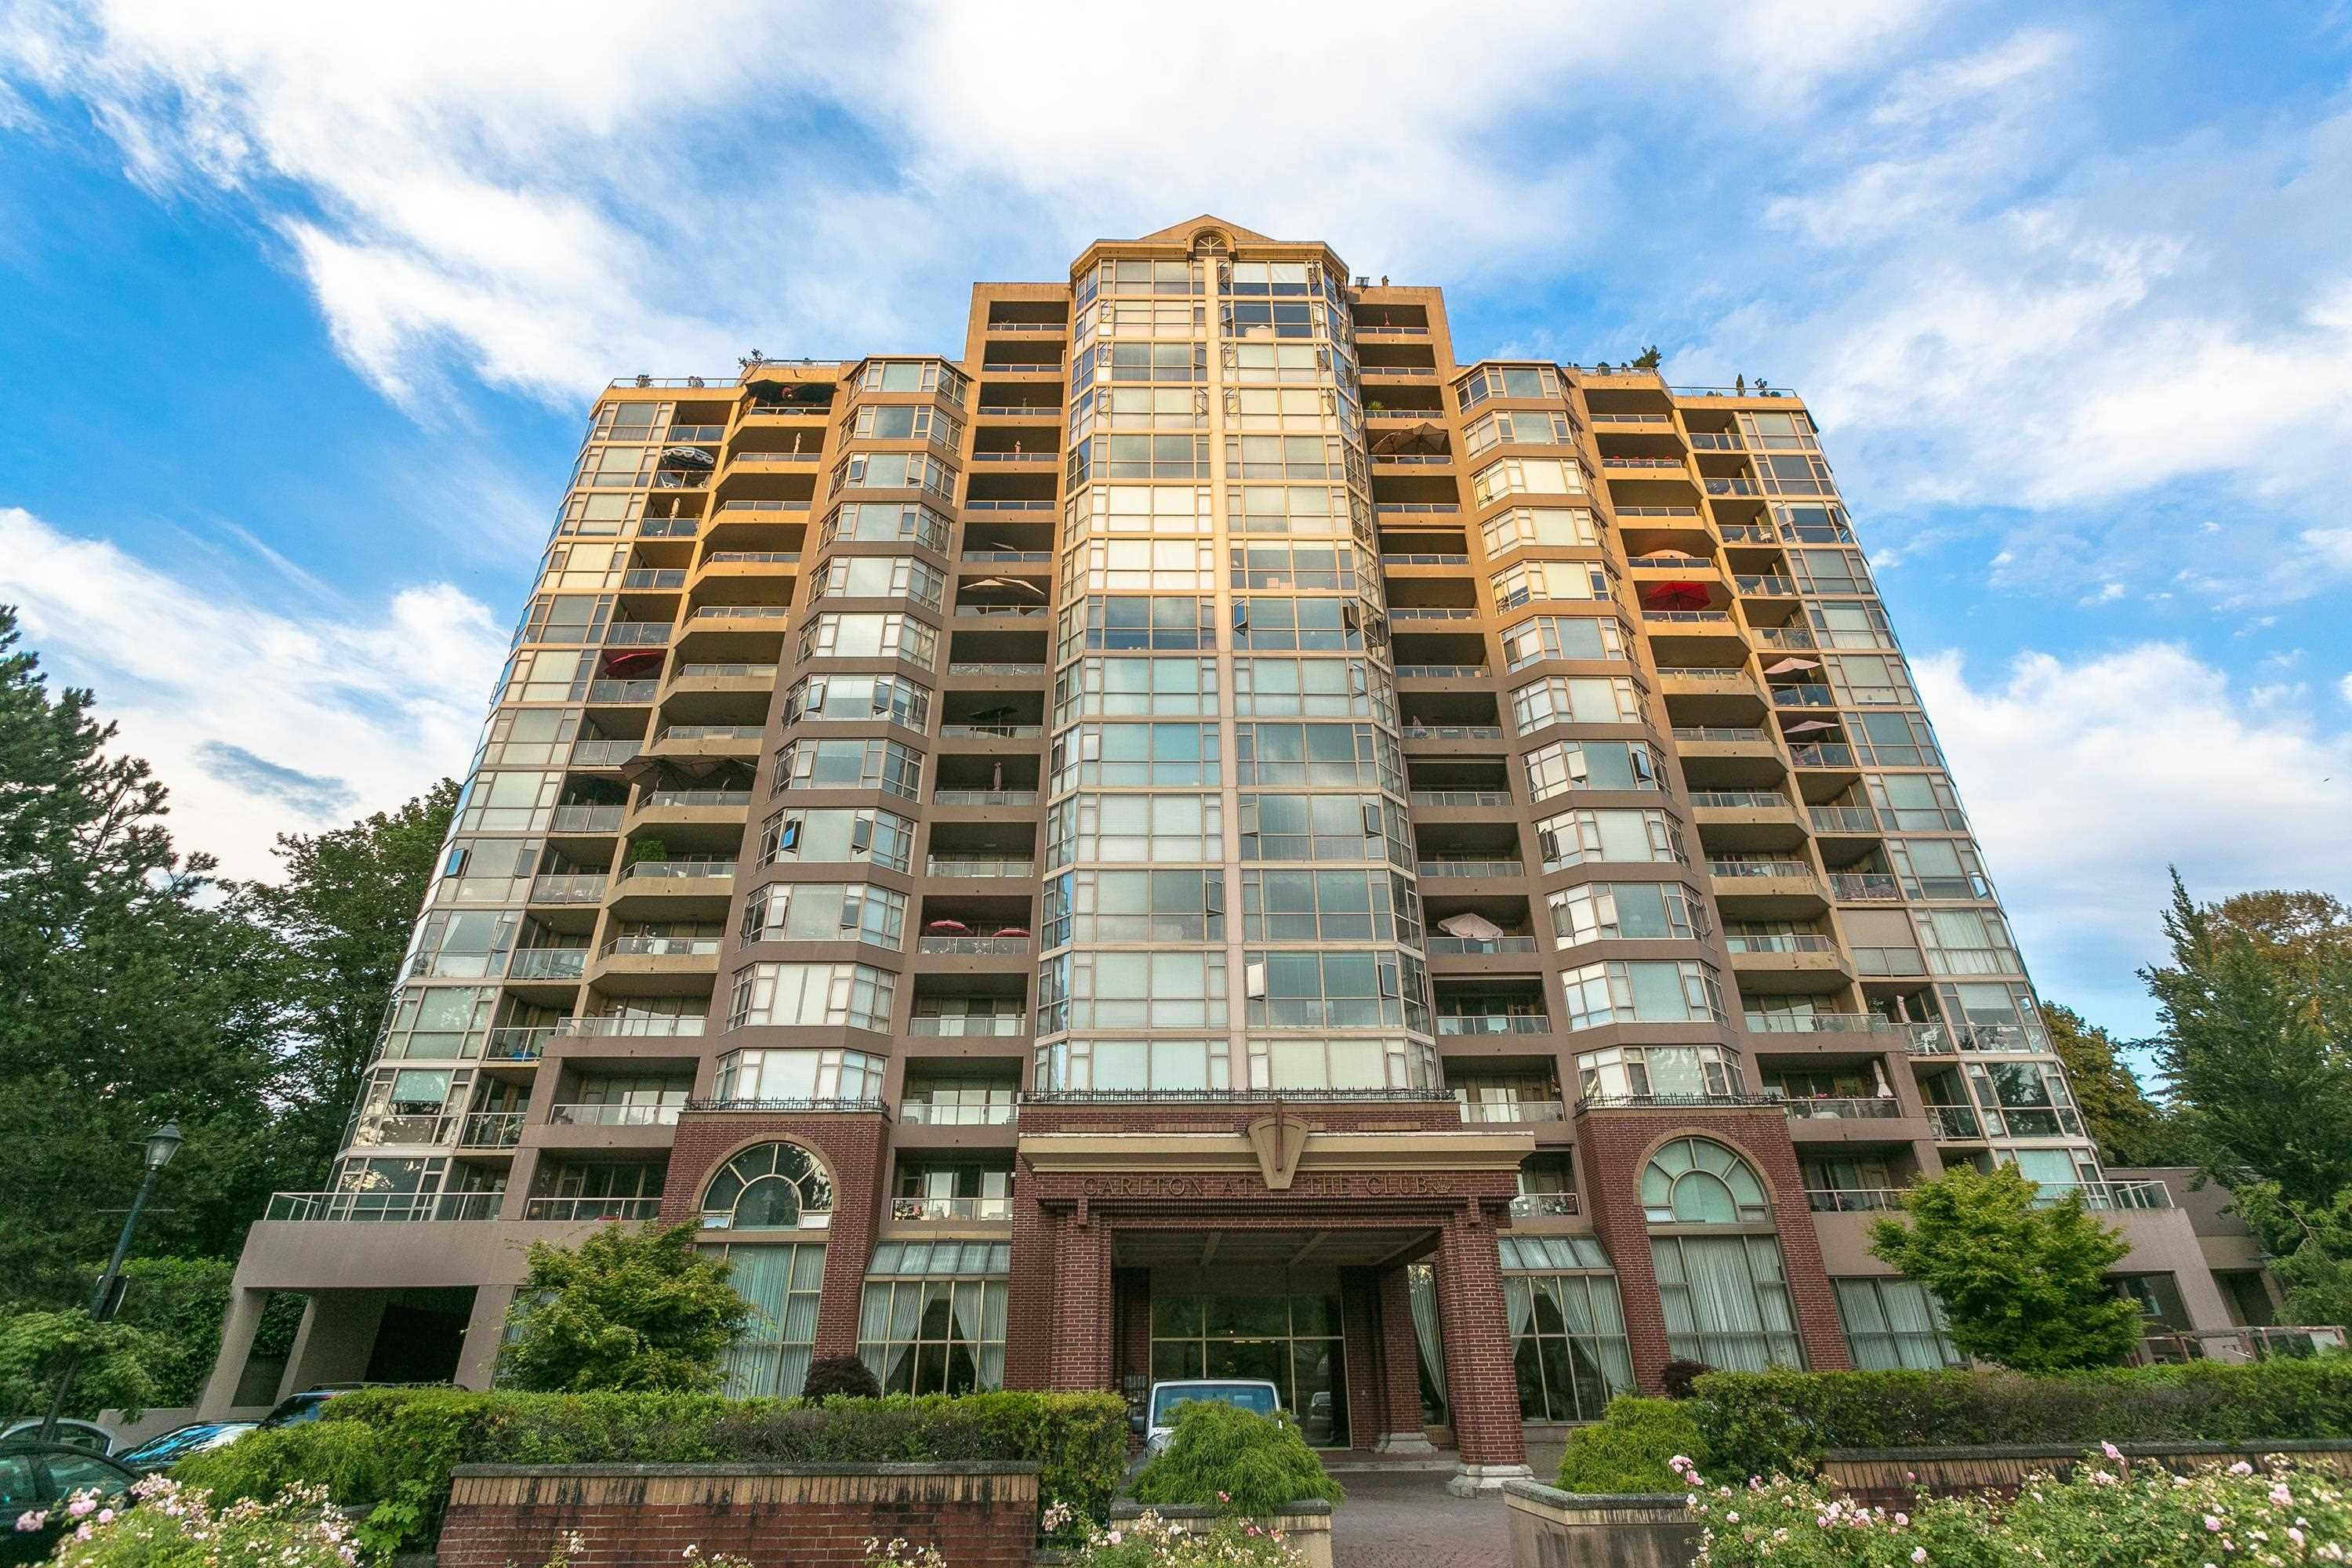 """Main Photo: 1411 1327 E KEITH Road in North Vancouver: Lynnmour Condo for sale in """"CARLTON AT THE CLUB"""" : MLS®# R2624920"""